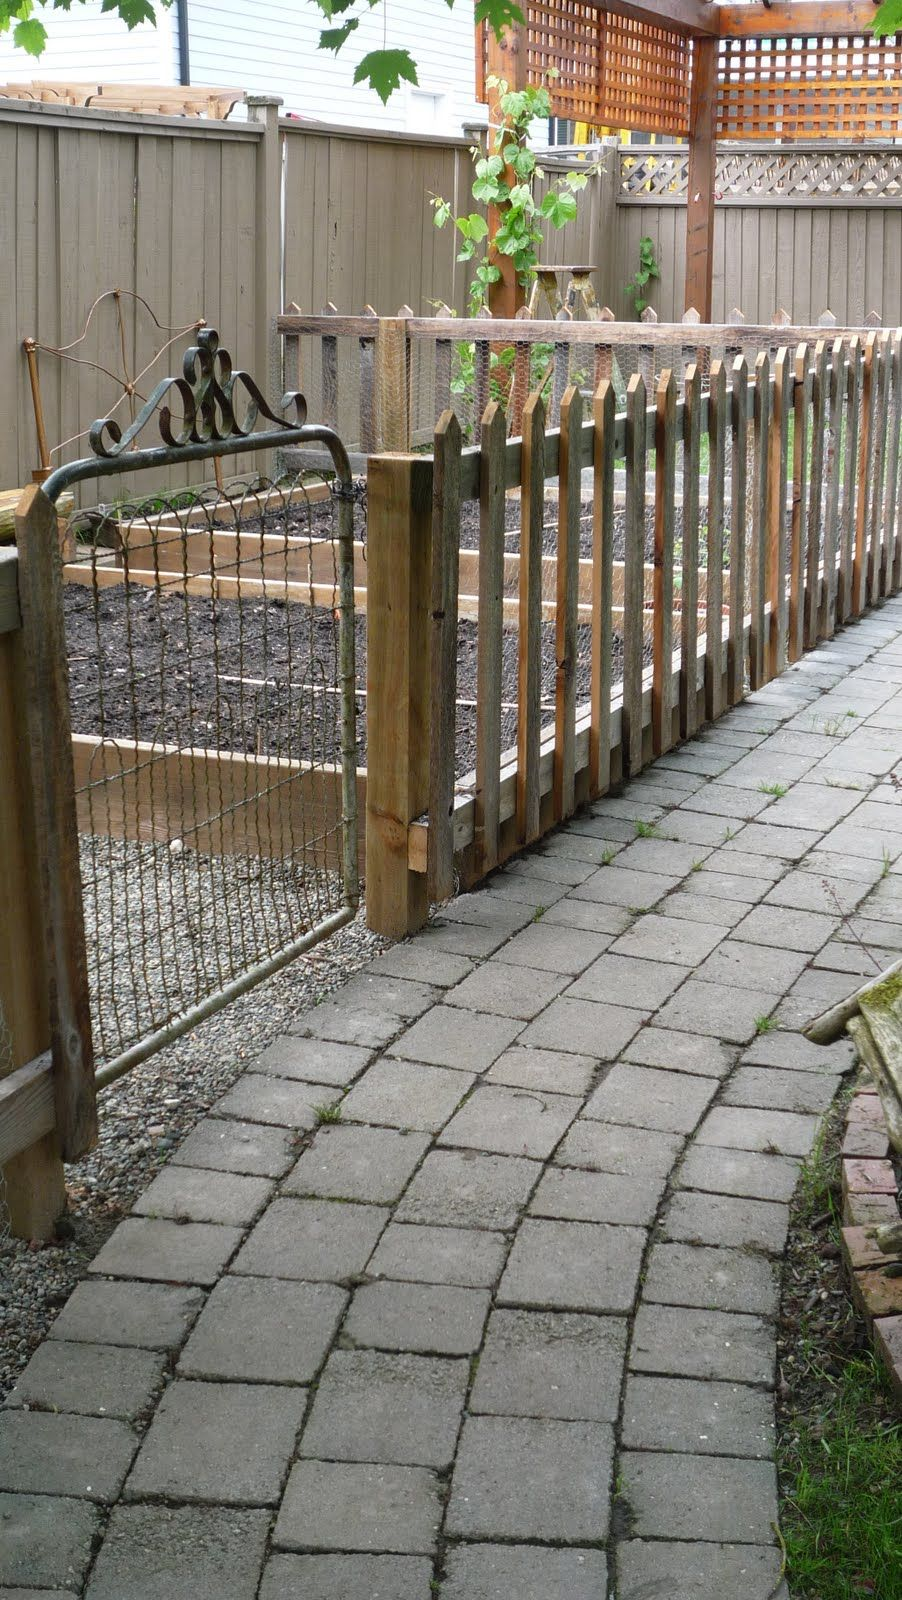 Echelon Plus Puppy Panel is our dog fence panel for the Echelon Plus  aluminum wrought-iron lookfence system. This panel is specially designed  for small dog ...